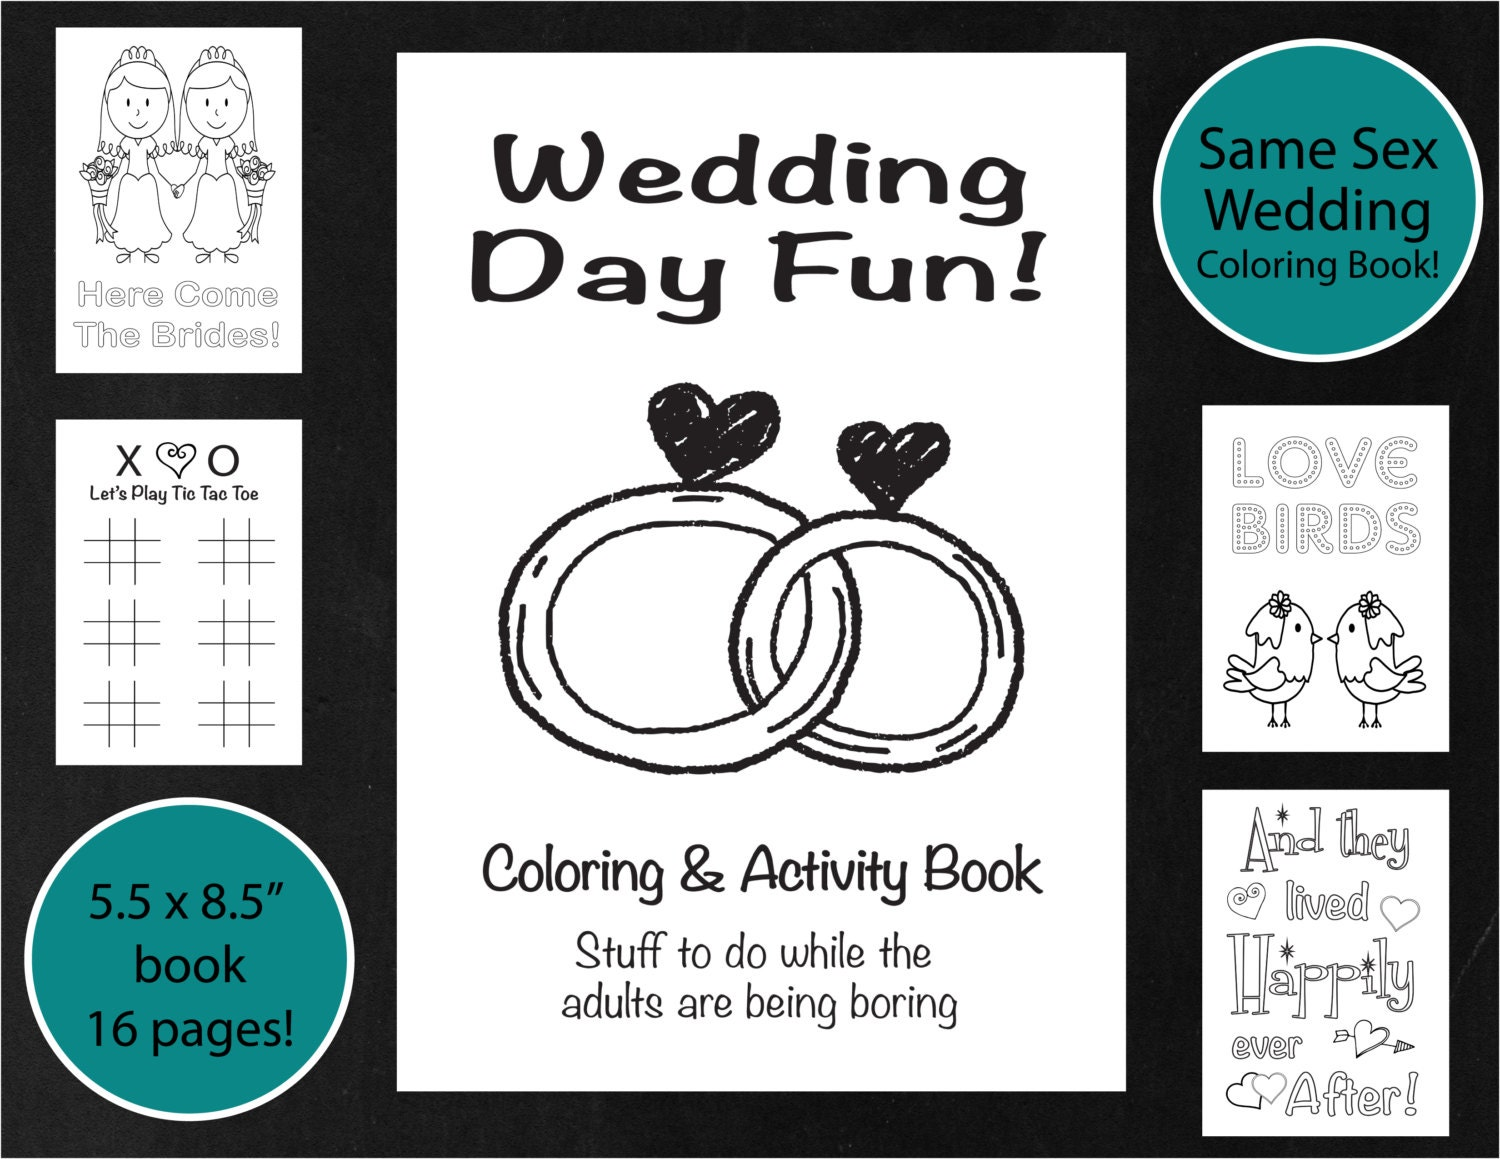 Cute Frozen Coloring Book Tiny Paint With Water Coloring Books Clean Minions Coloring Book Coloring Book Flowers Old Coloring Book Solutions DarkHow To Create A Coloring Book Same Sex Wedding Coloring \u0026 Activity Book Brides Lesbian